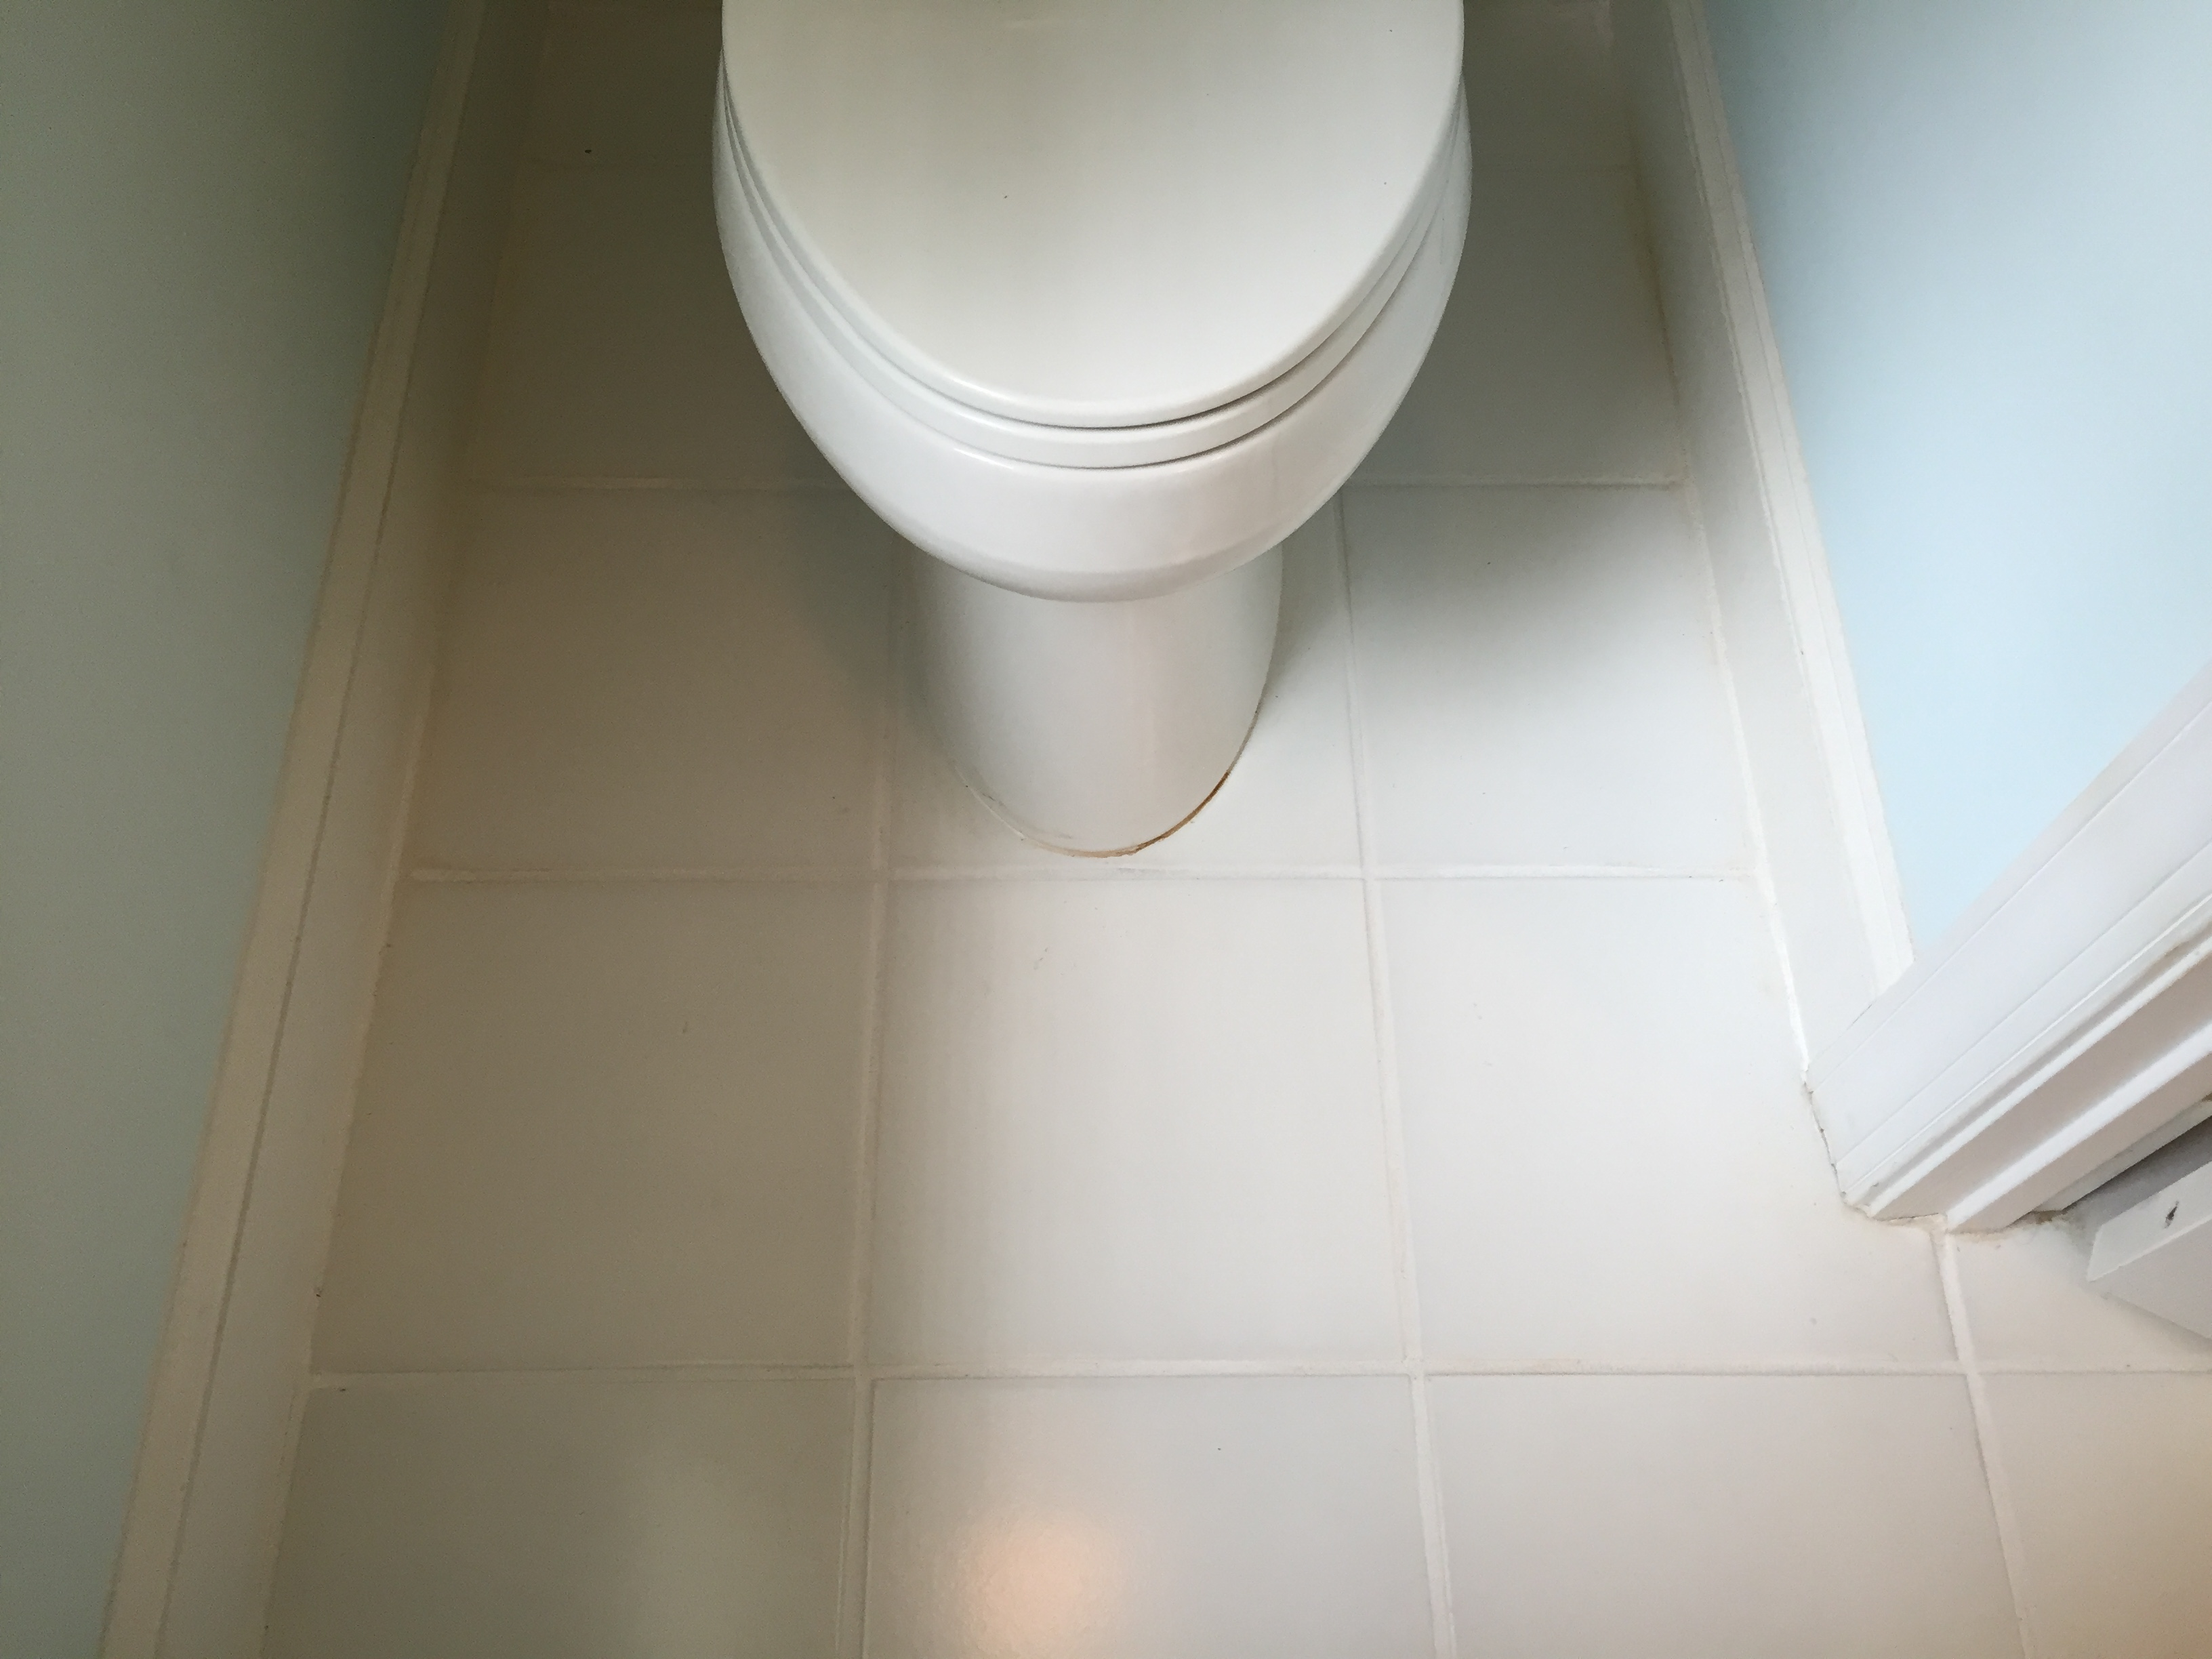 Bathroom Tile Floor Cleaning, Restoration and Sealing, NC